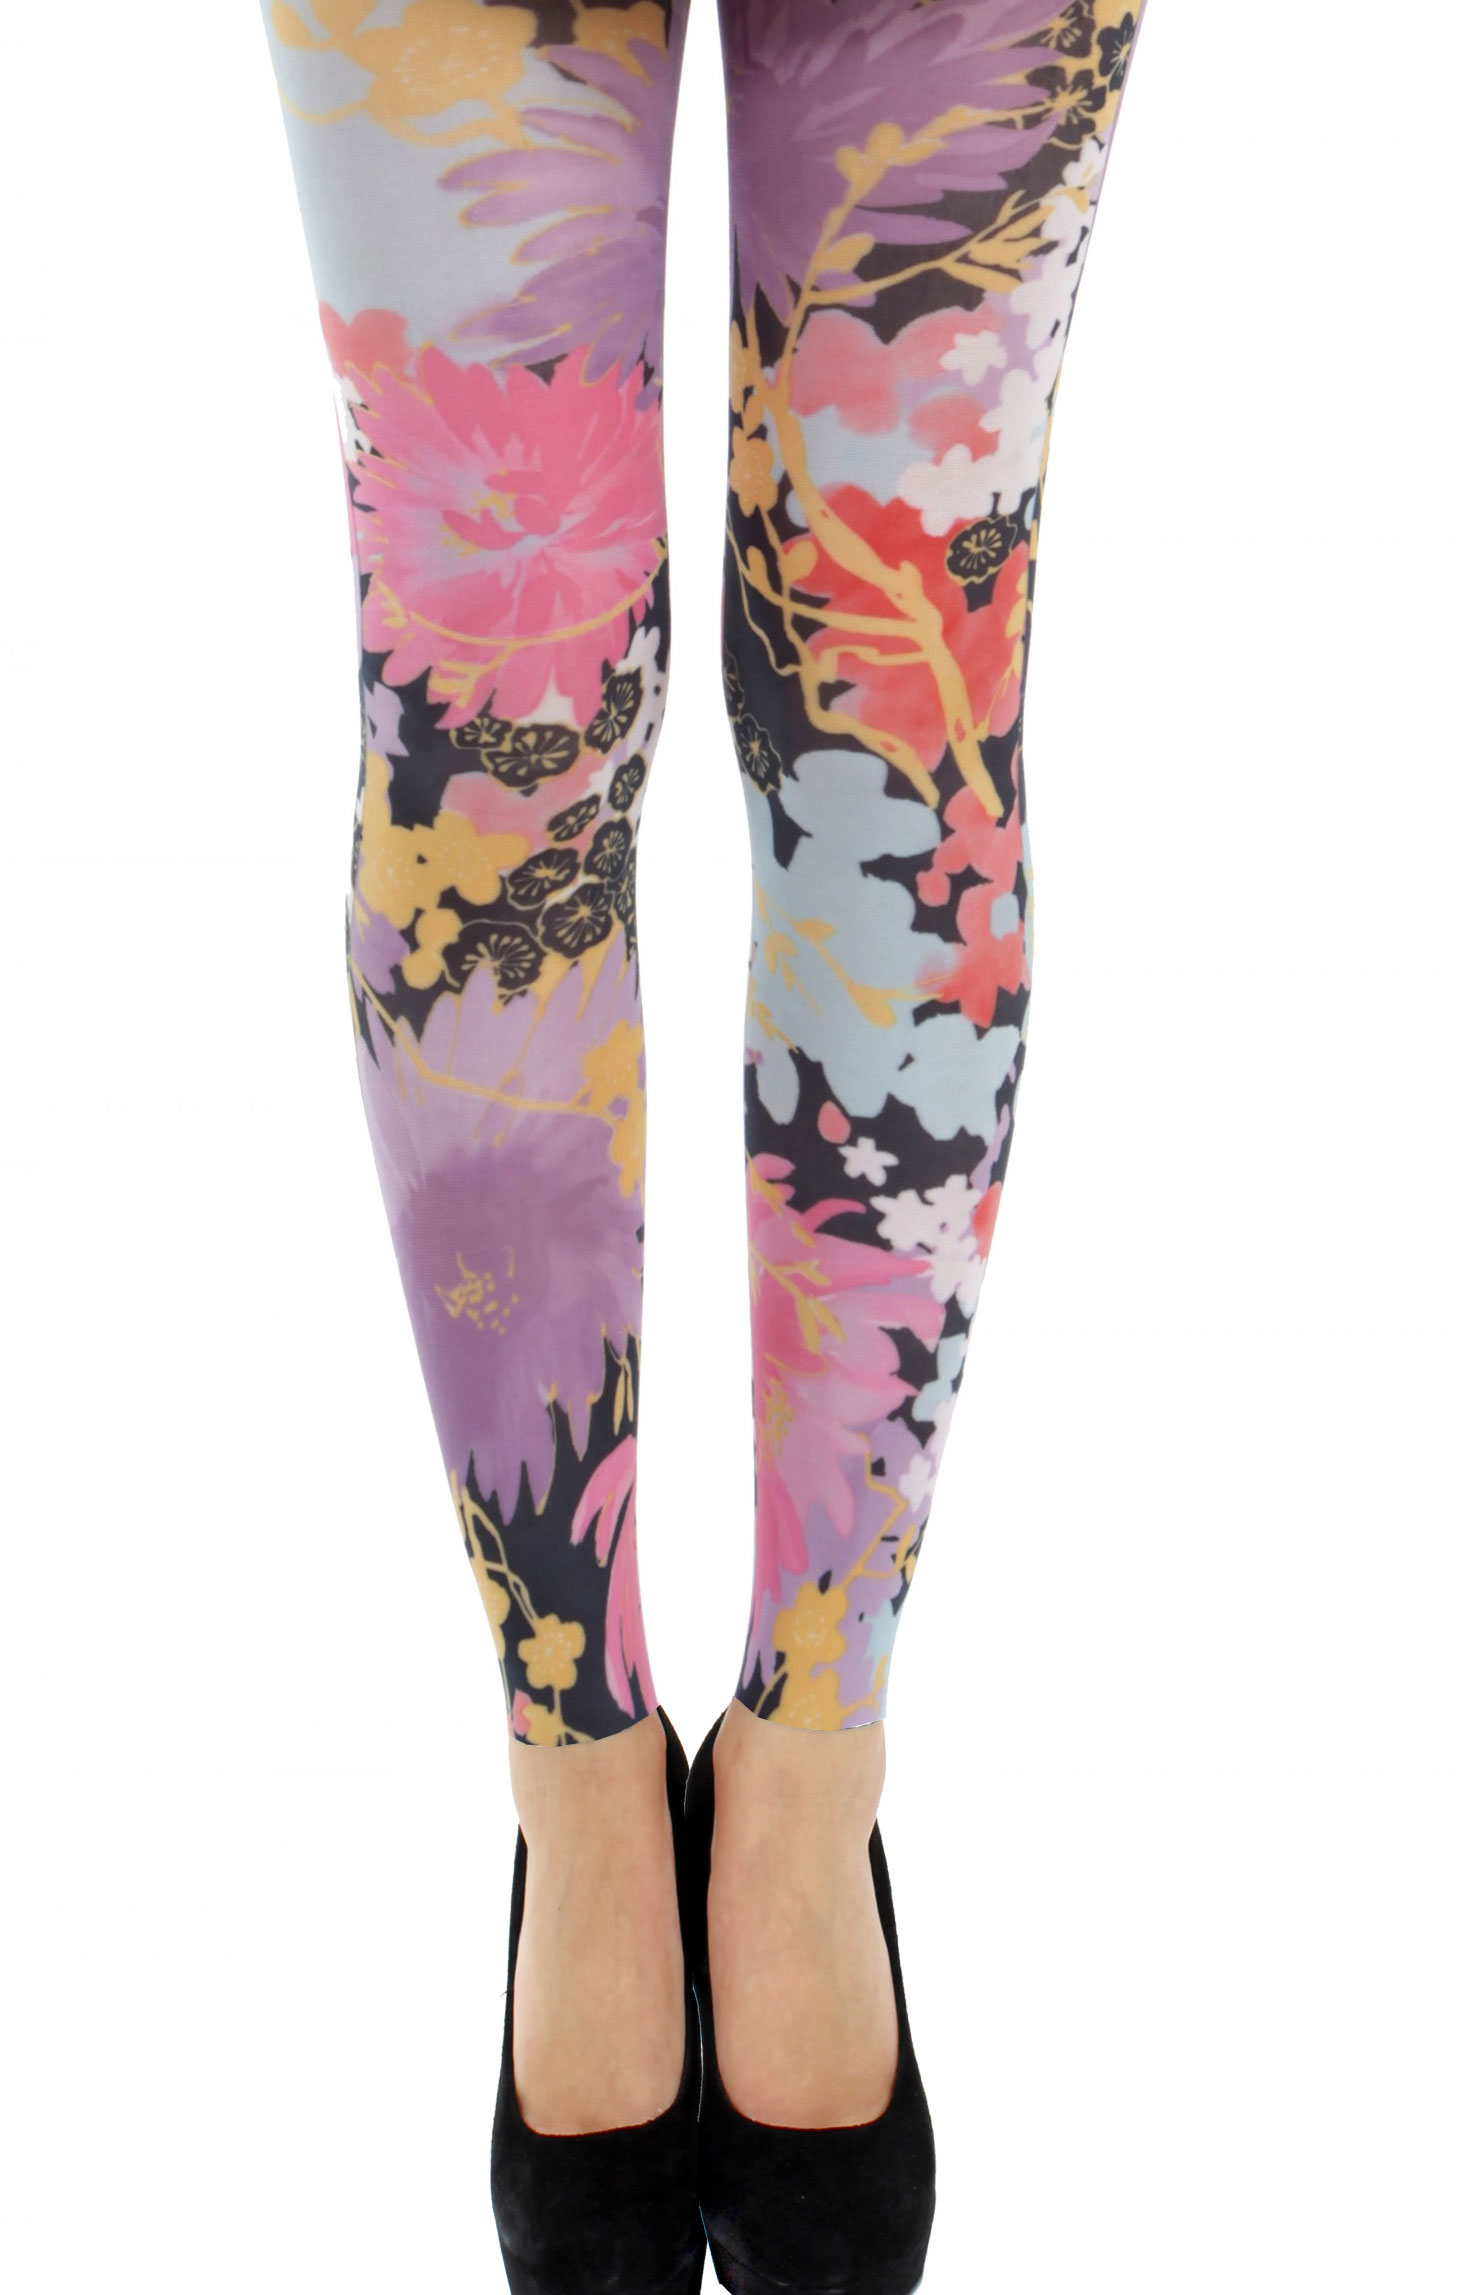 Plus Size Patterned Tights - styleofit.com